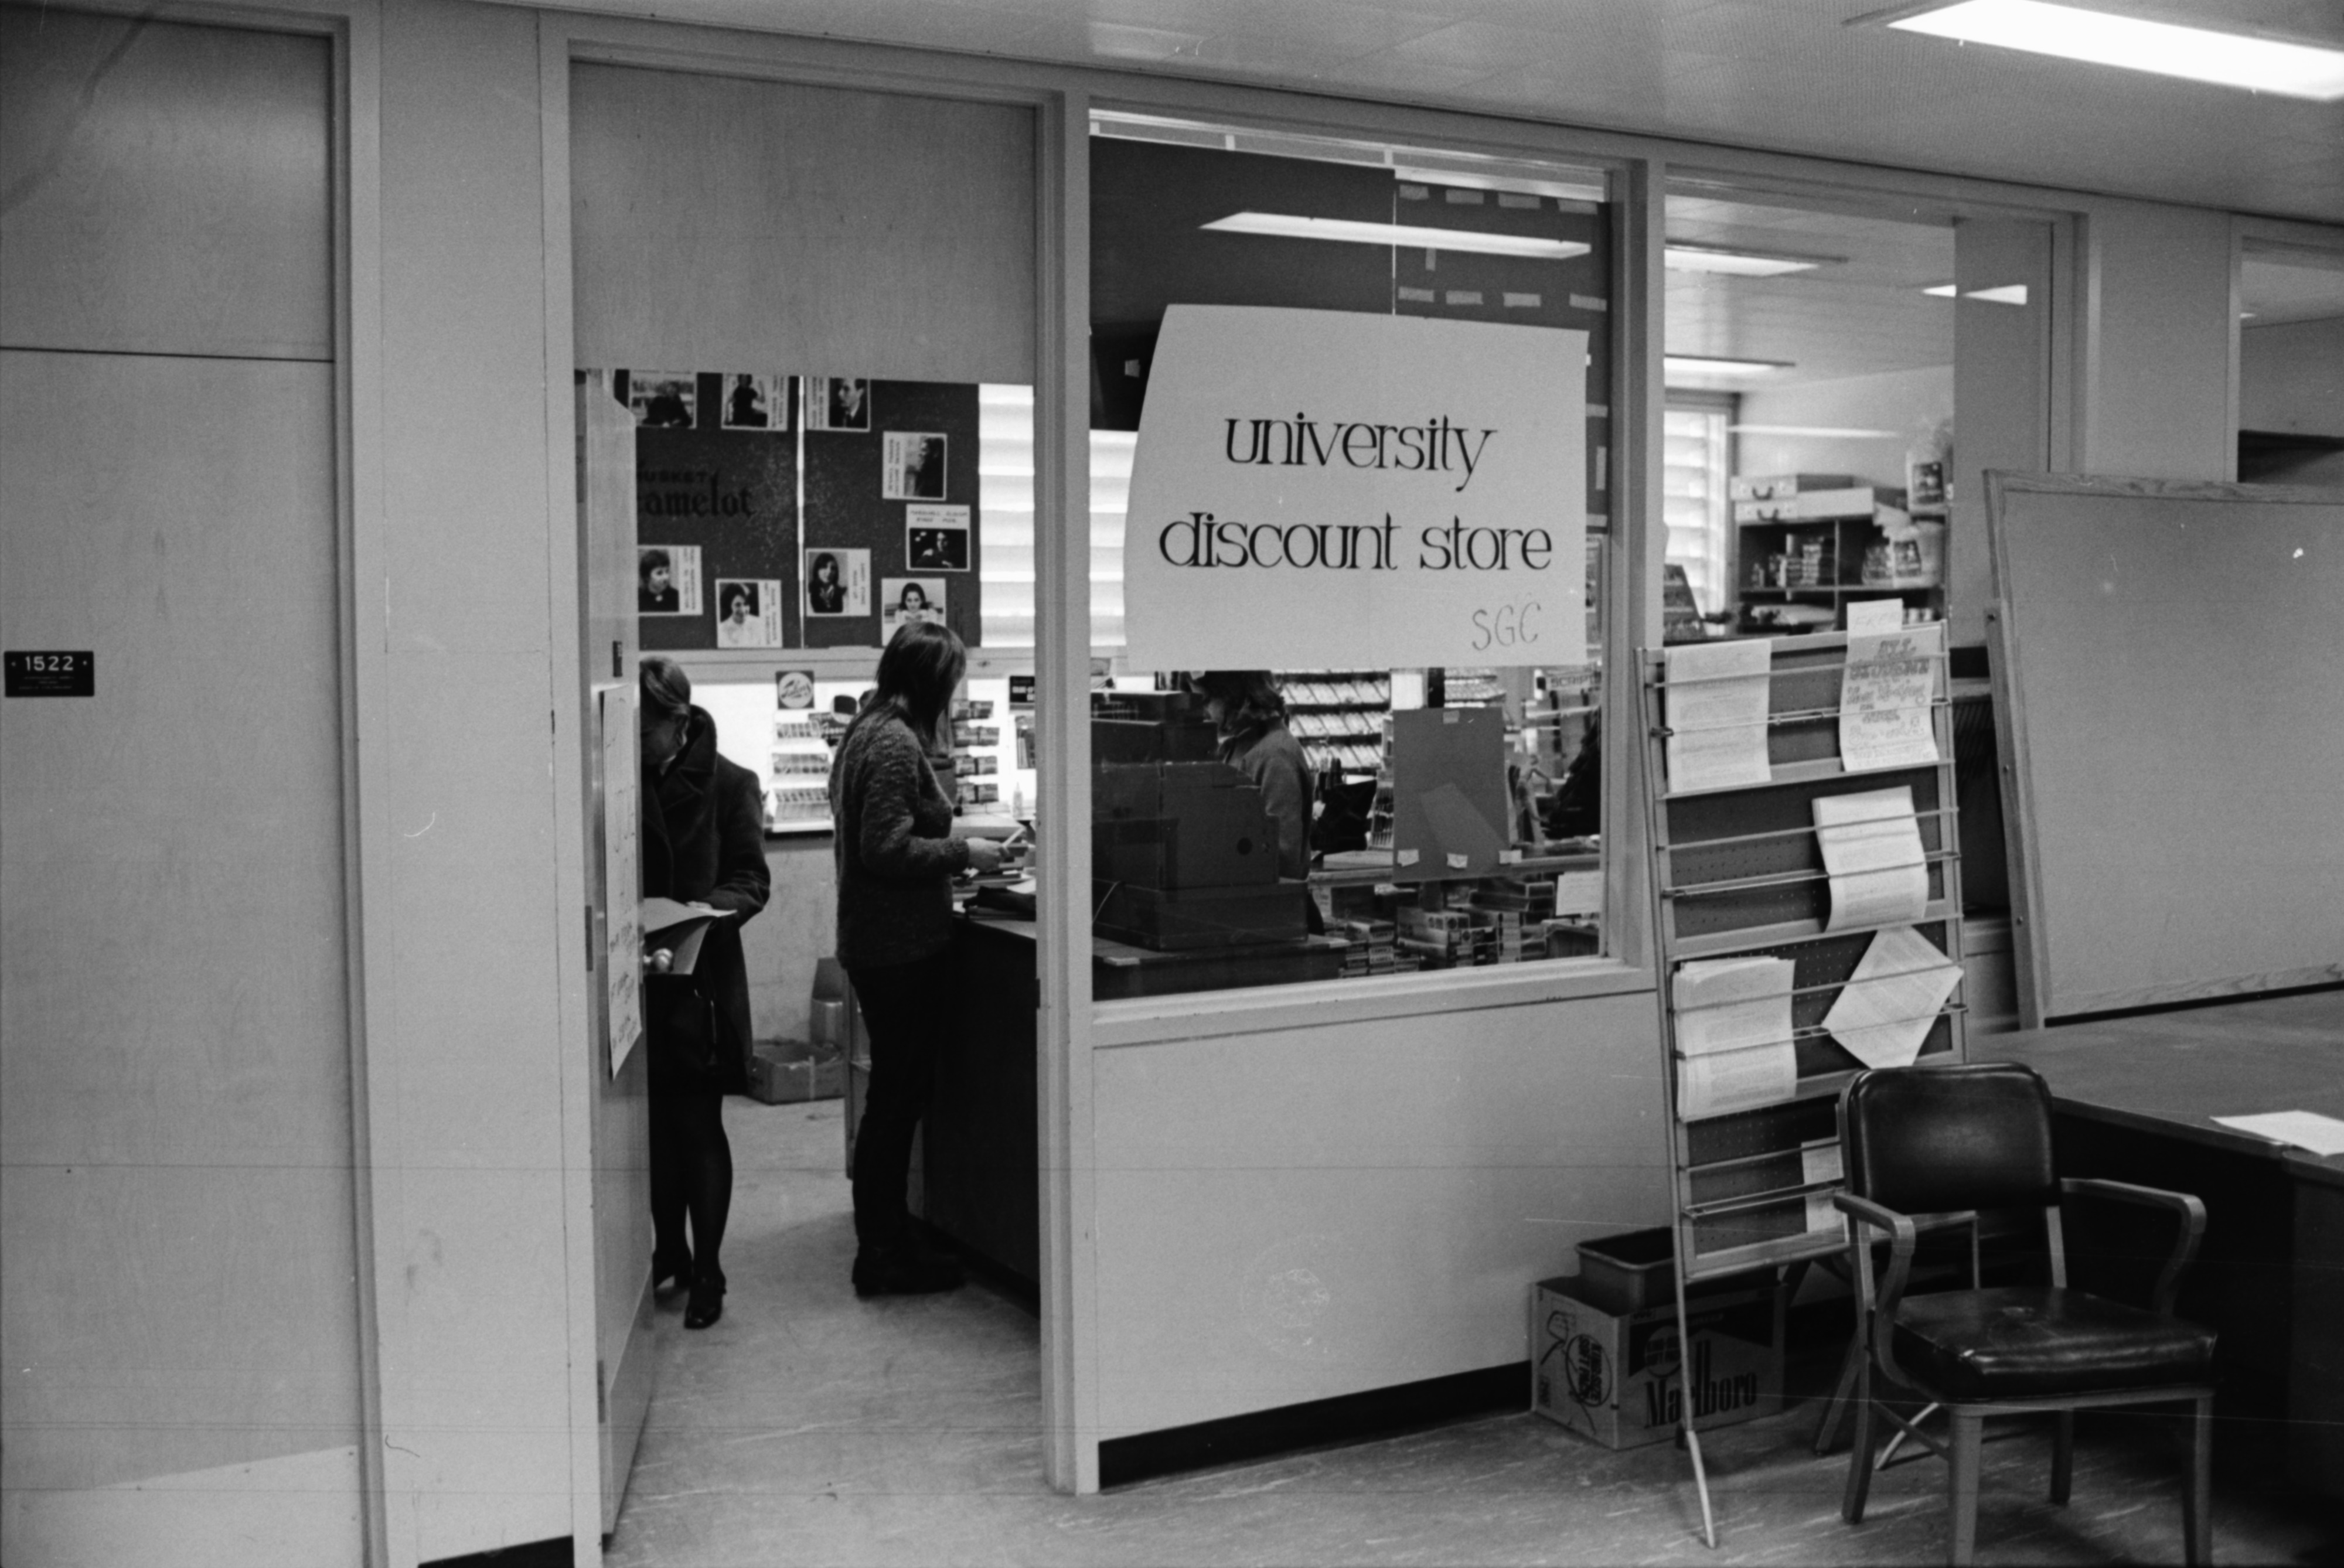 Student Discount Store in Student Activities Building, February 1969 image